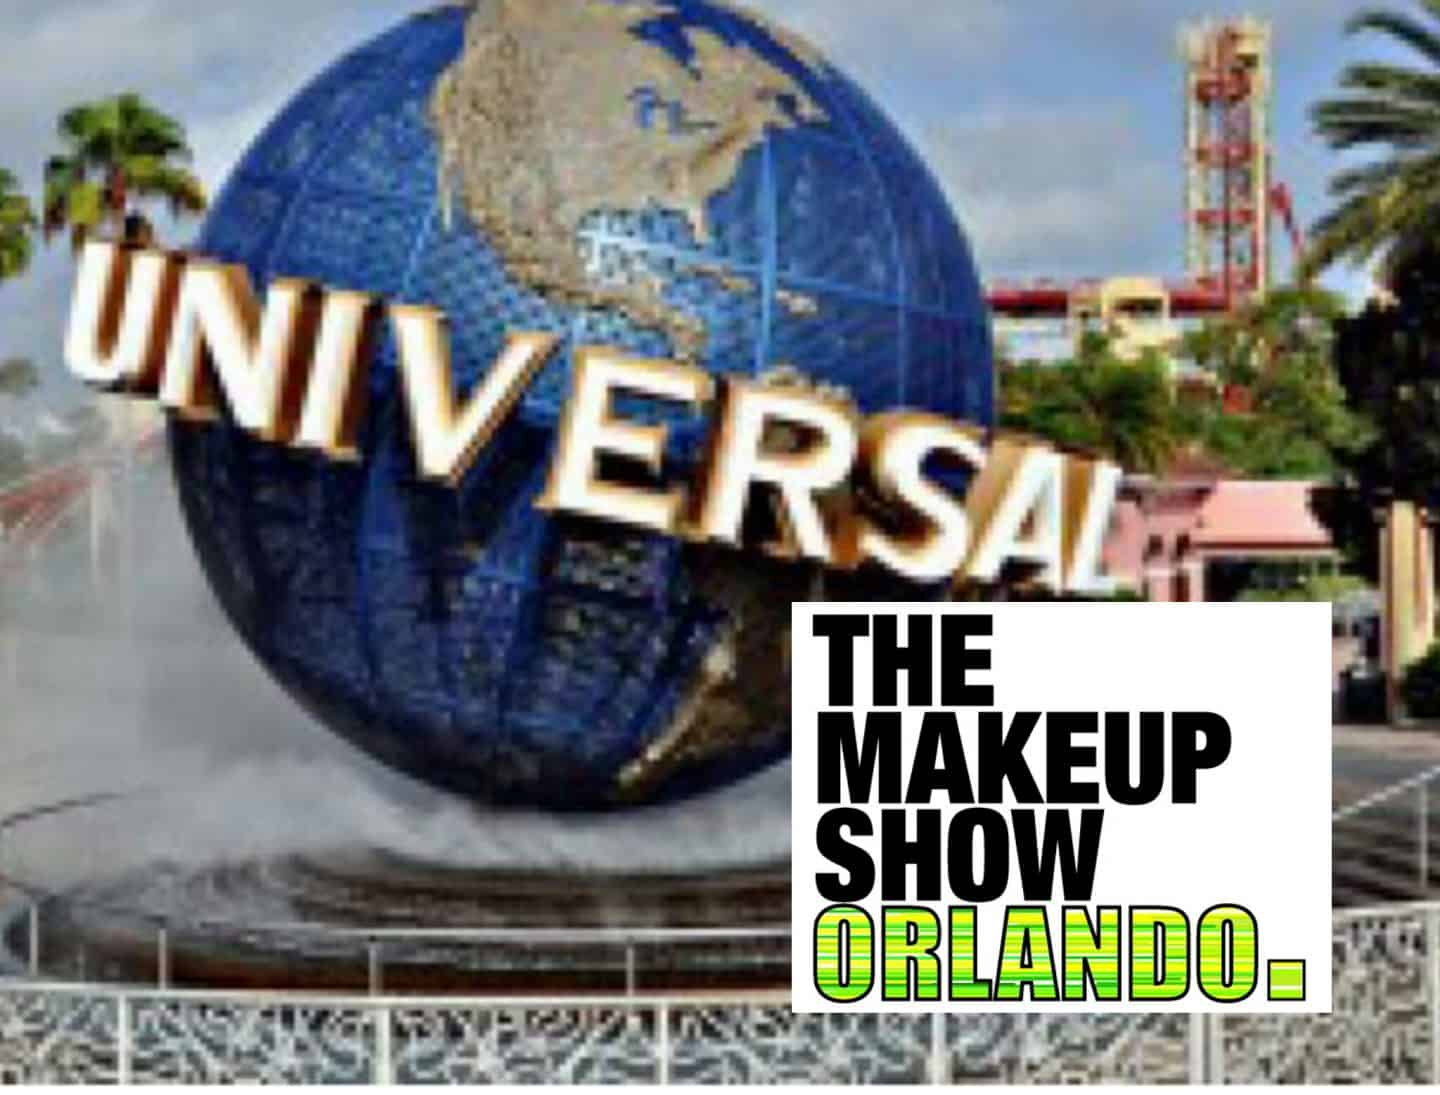 Universal Studios Tour With The Makeup Show Orlando